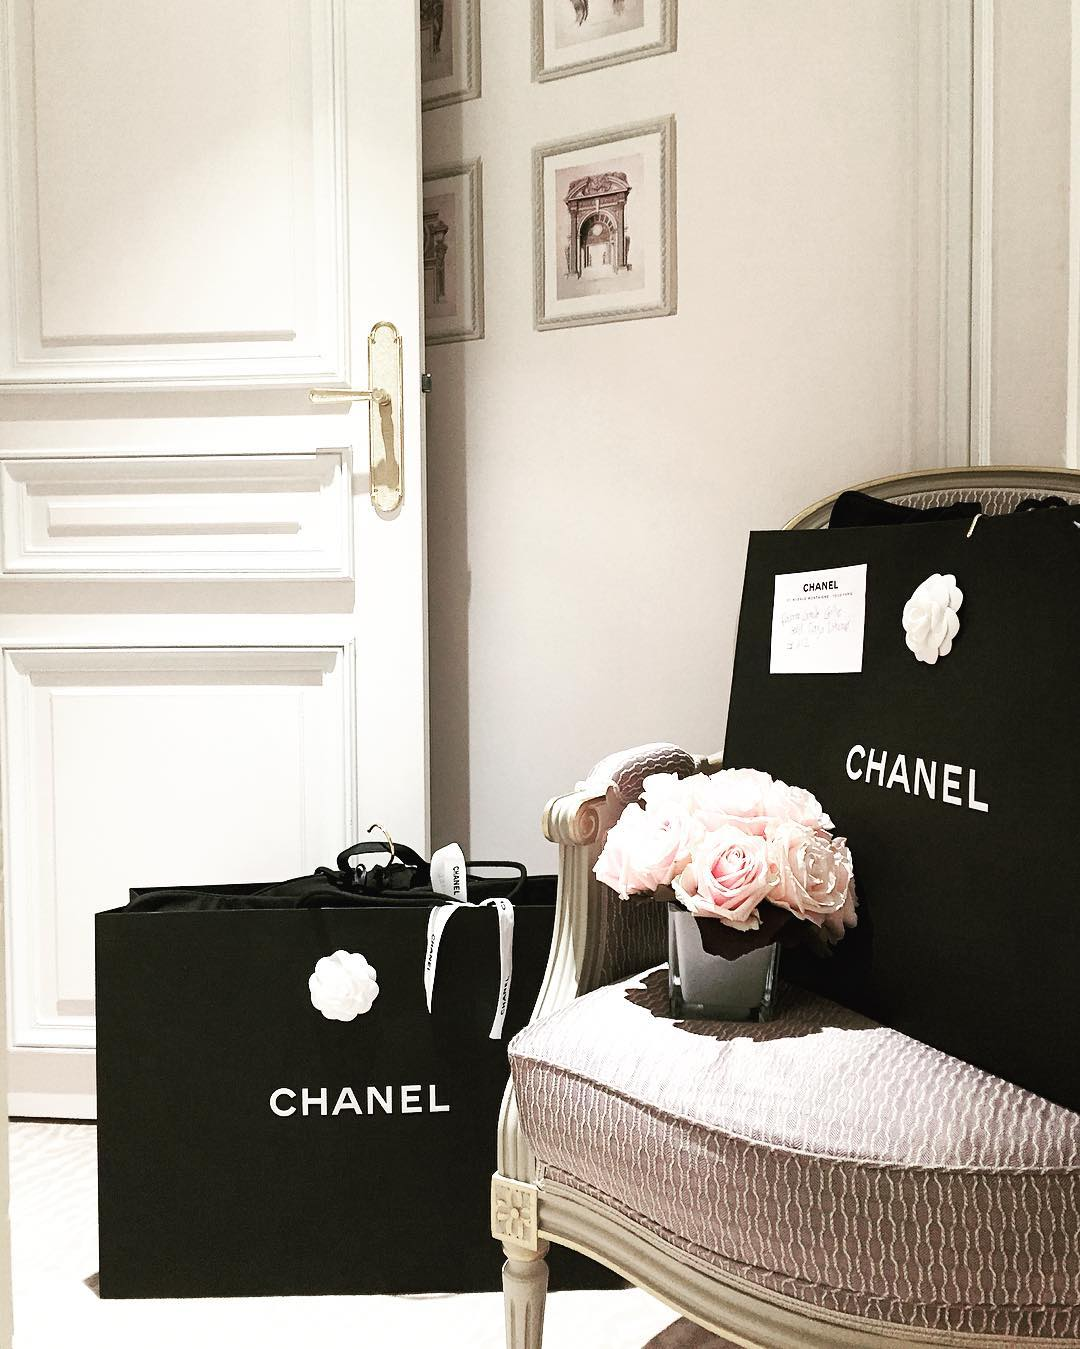 chanel boy bag pink roses dreaming